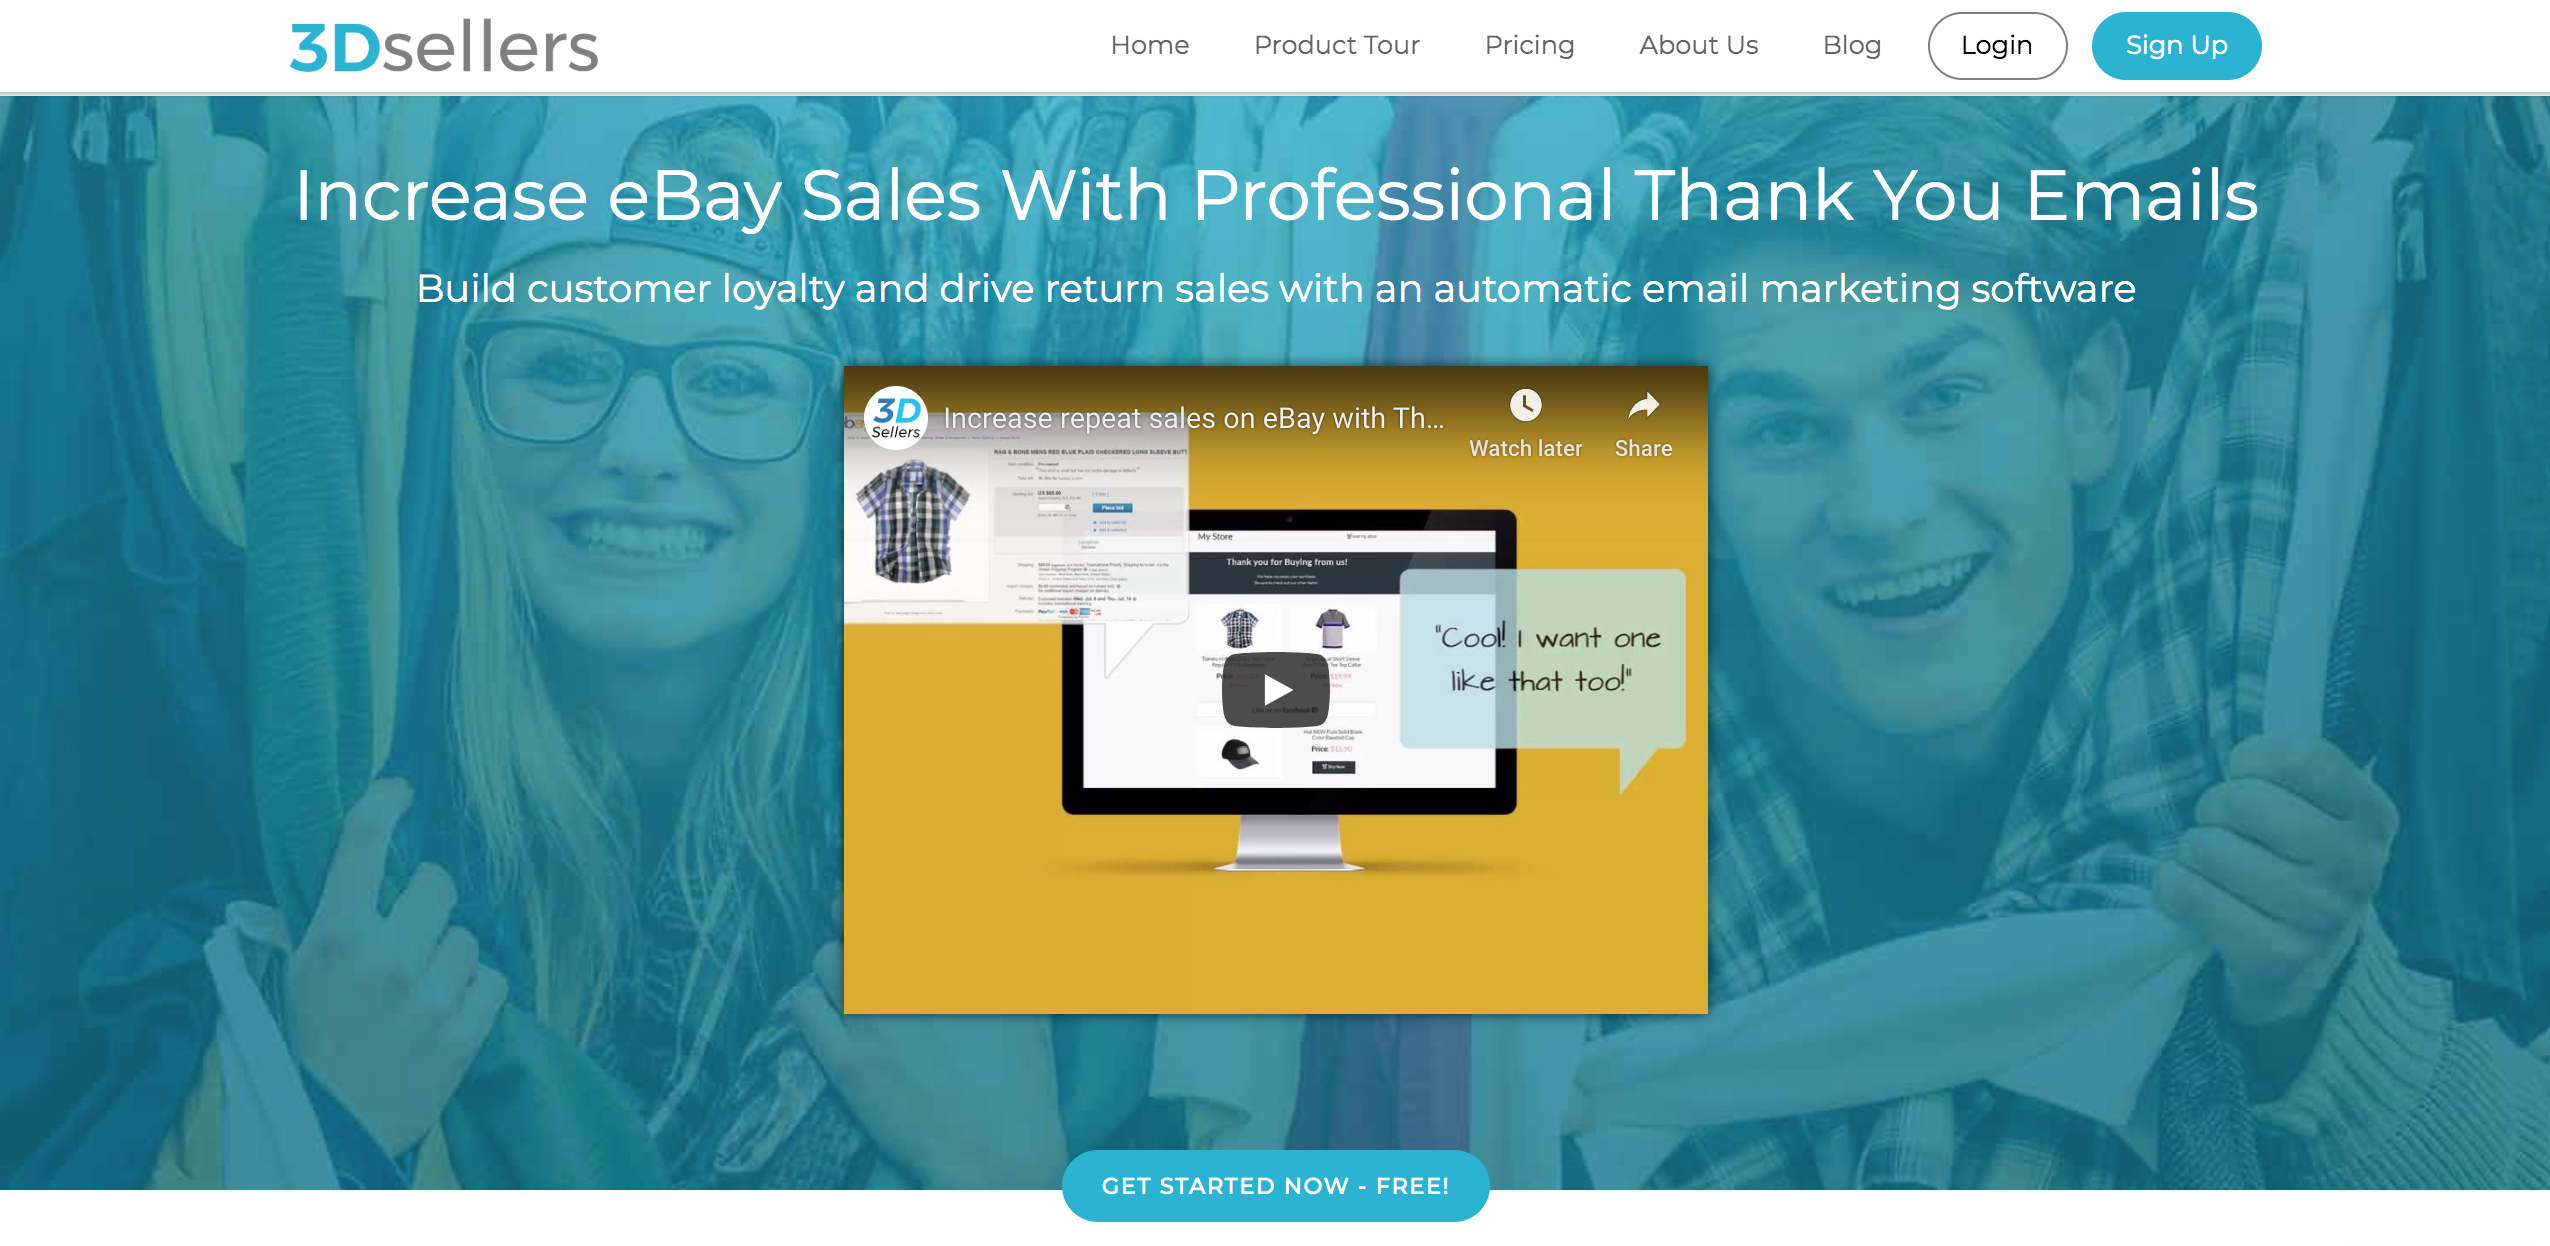 email marketing software to boost your ecommerce sales